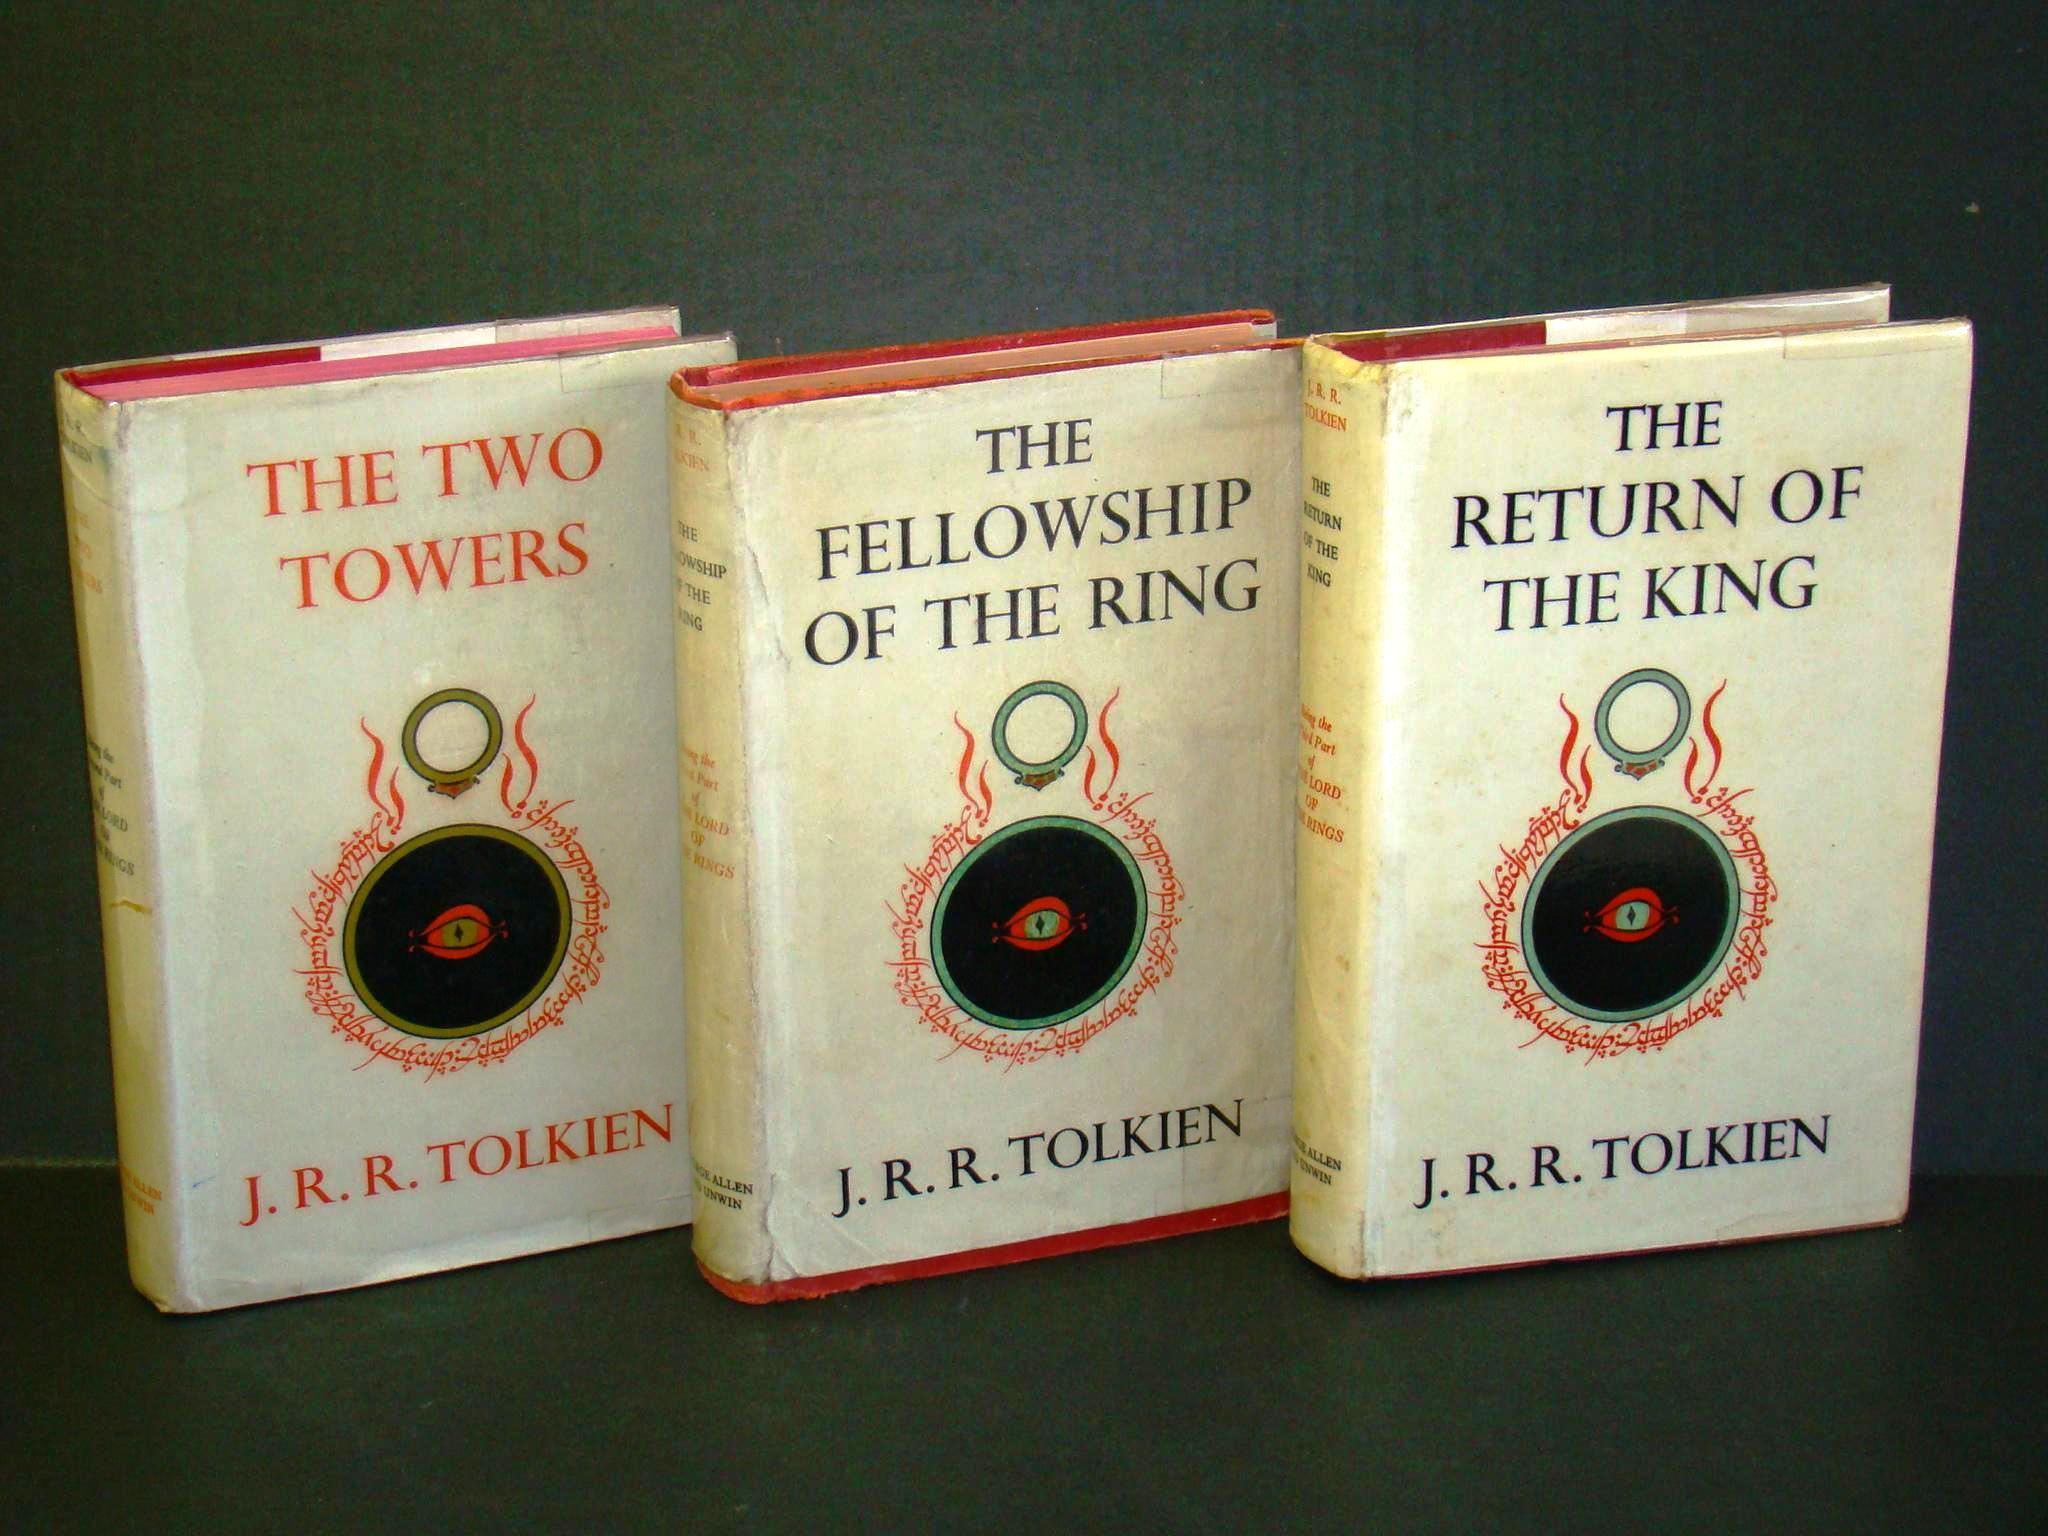 lord of the rings tolkien archives freelance christianity  at nearapp.co